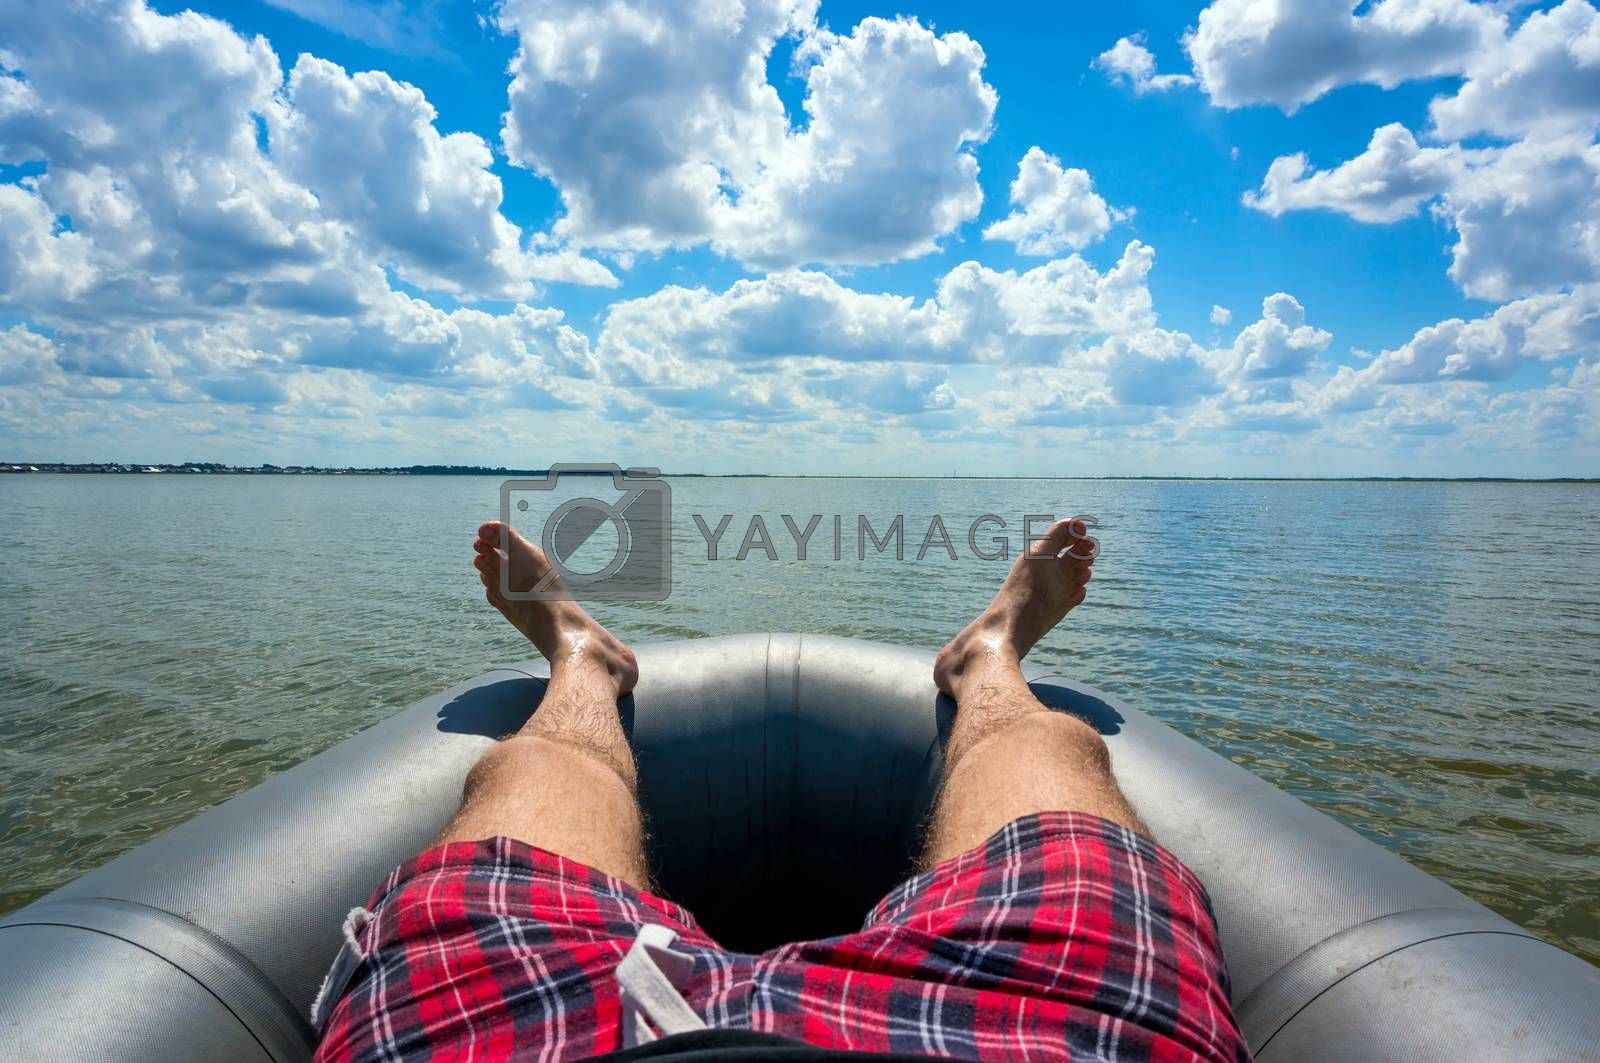 A young man lies resting on the gray inflatable boat on the lake. Relax outdoors and fishing on the background of beautiful sky with white Cumulus clouds